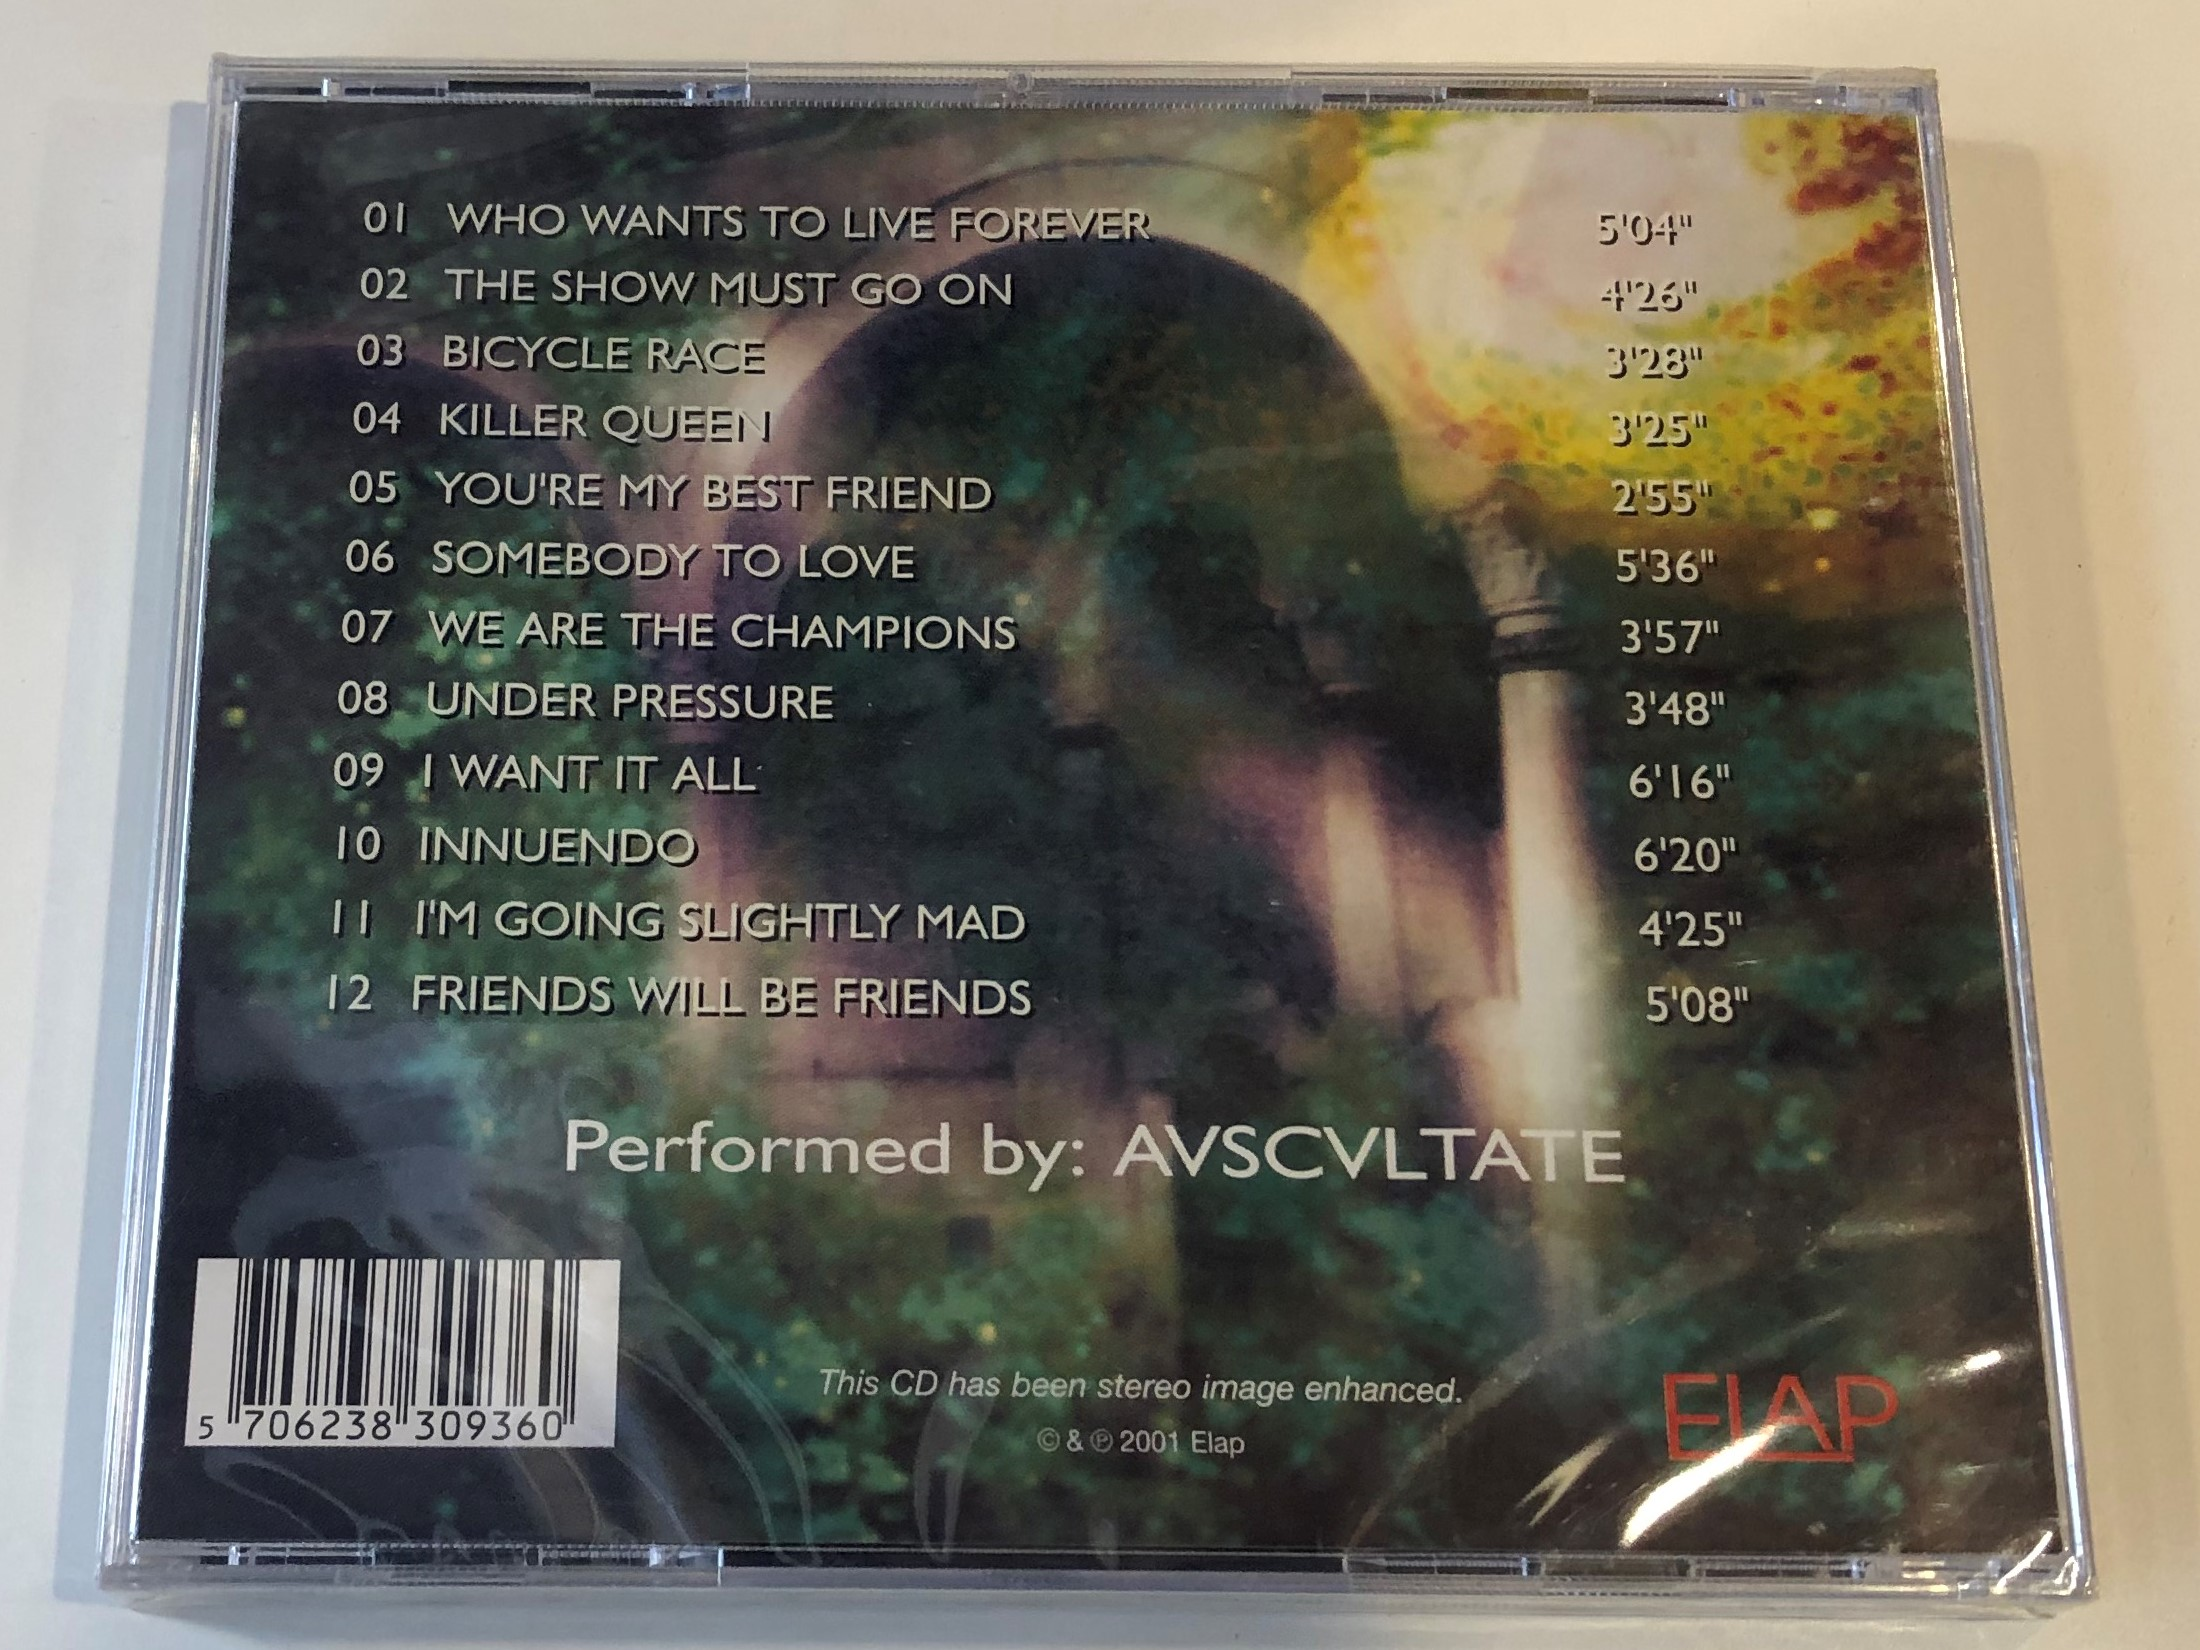 mystical-chants-the-songs-of-queen-performed-by-avscvltate-elap-audio-cd-2001-5706238309360-2-.jpg